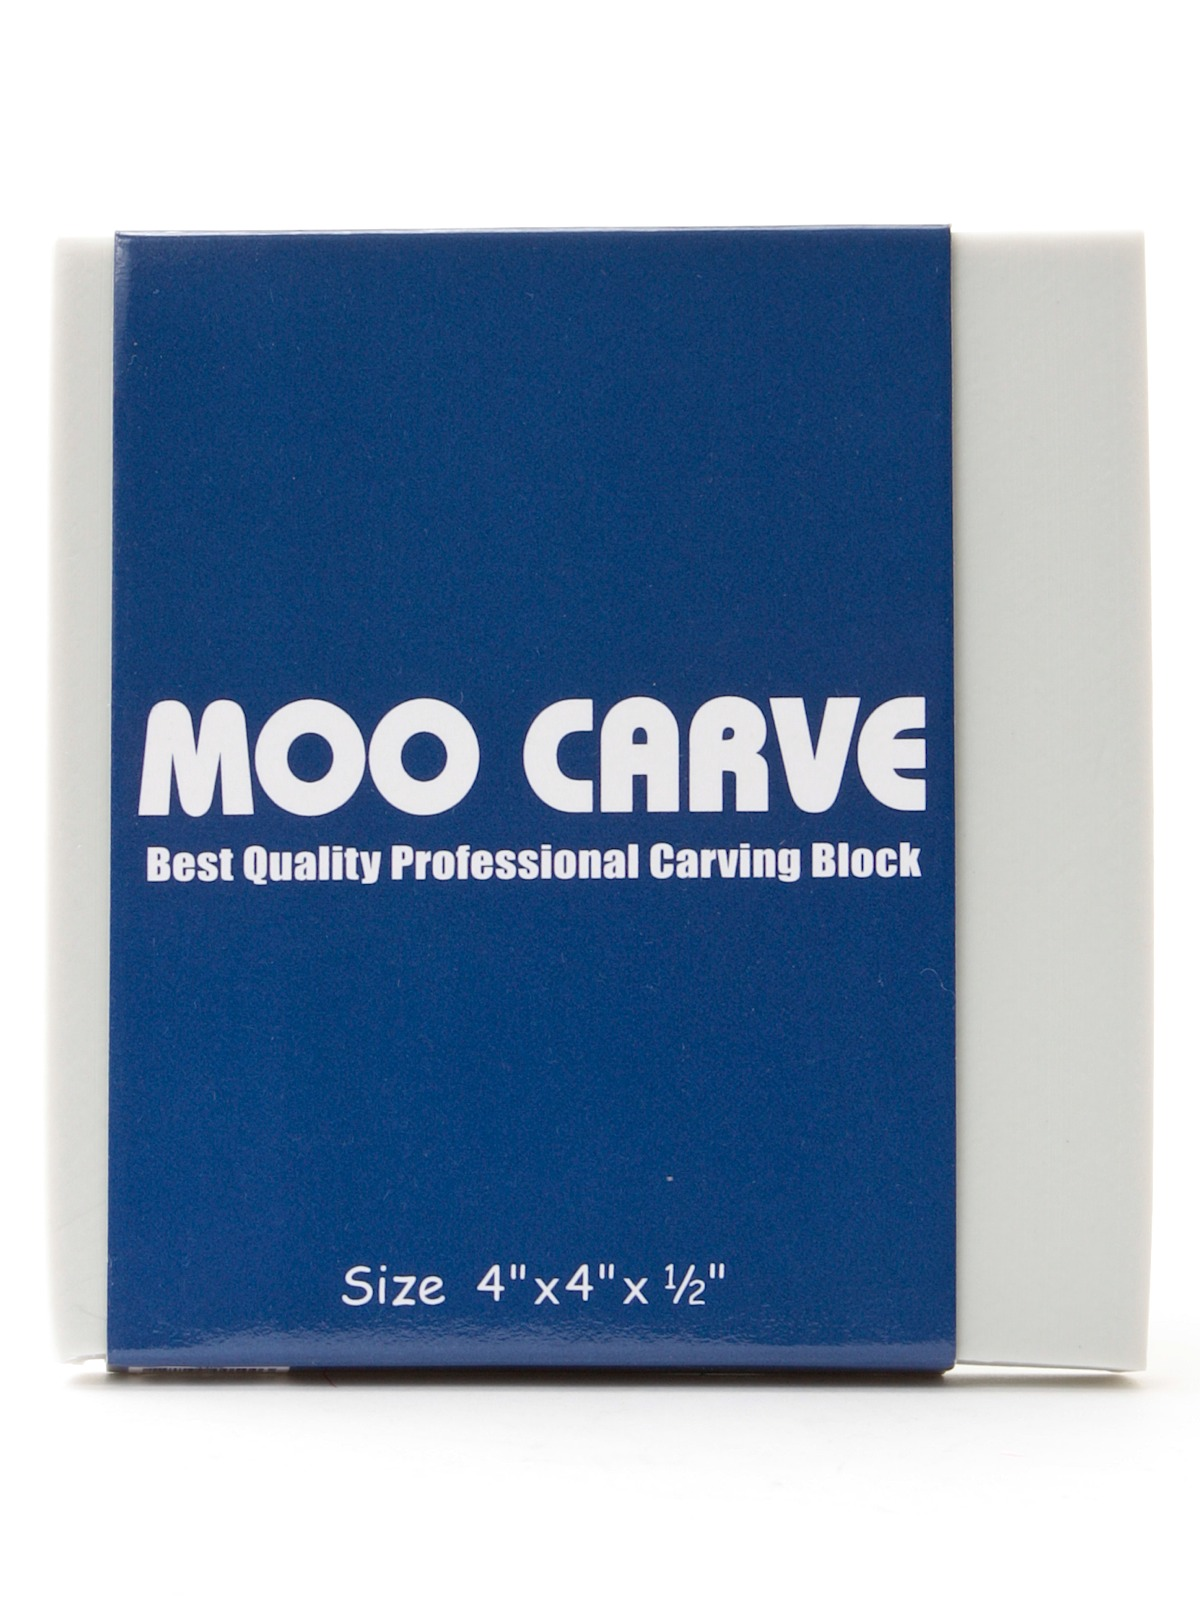 Moo Carve Artist Carving Block